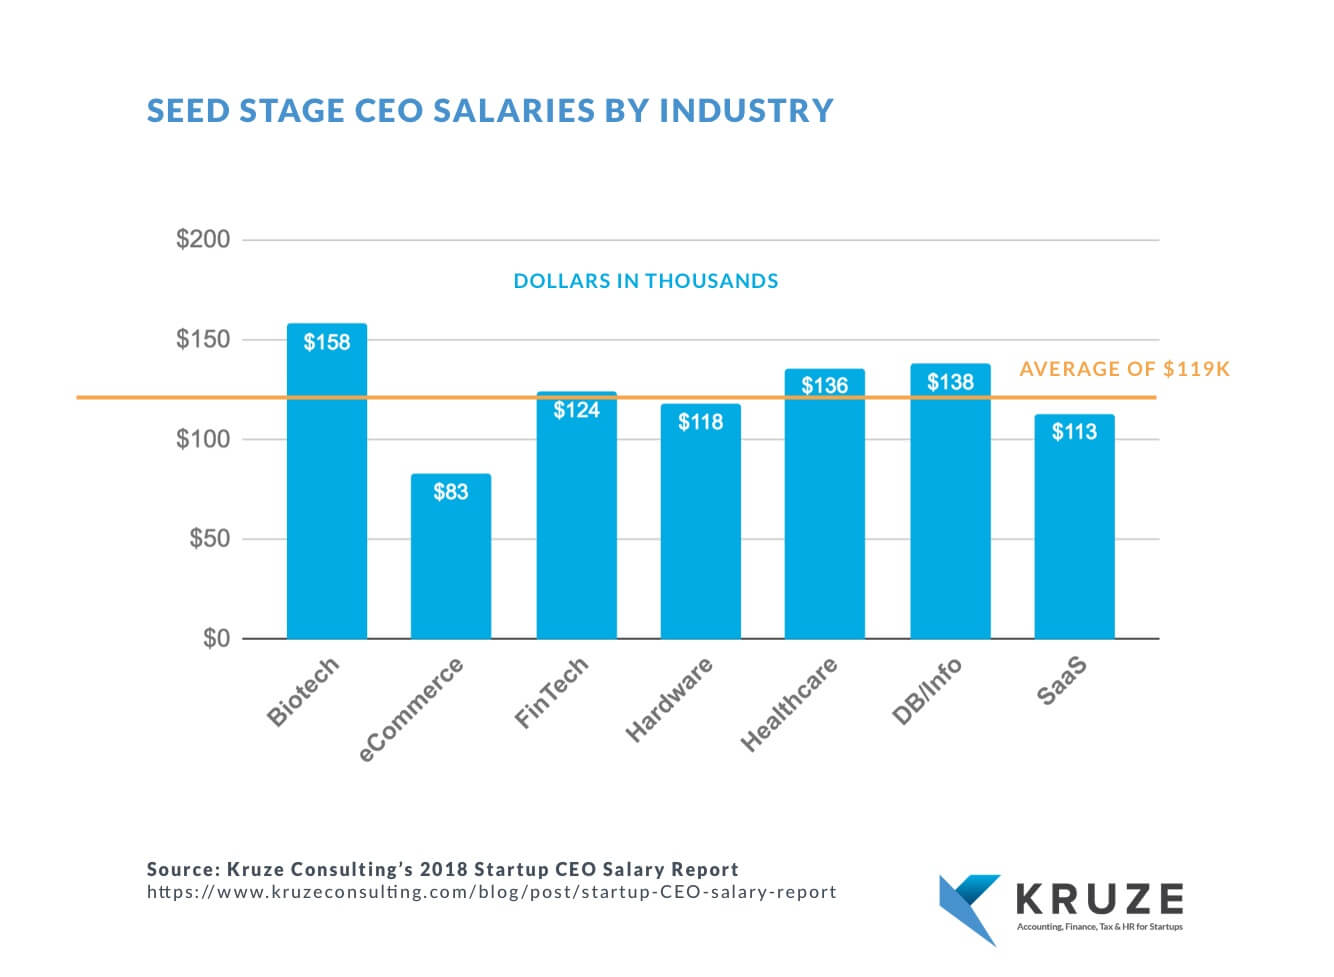 What-the-average-annual-CEO-salary-rate-SAAS-Fintech-or-B2B-CRM-during-the-early-stage-pre-seed-seed-in-SV